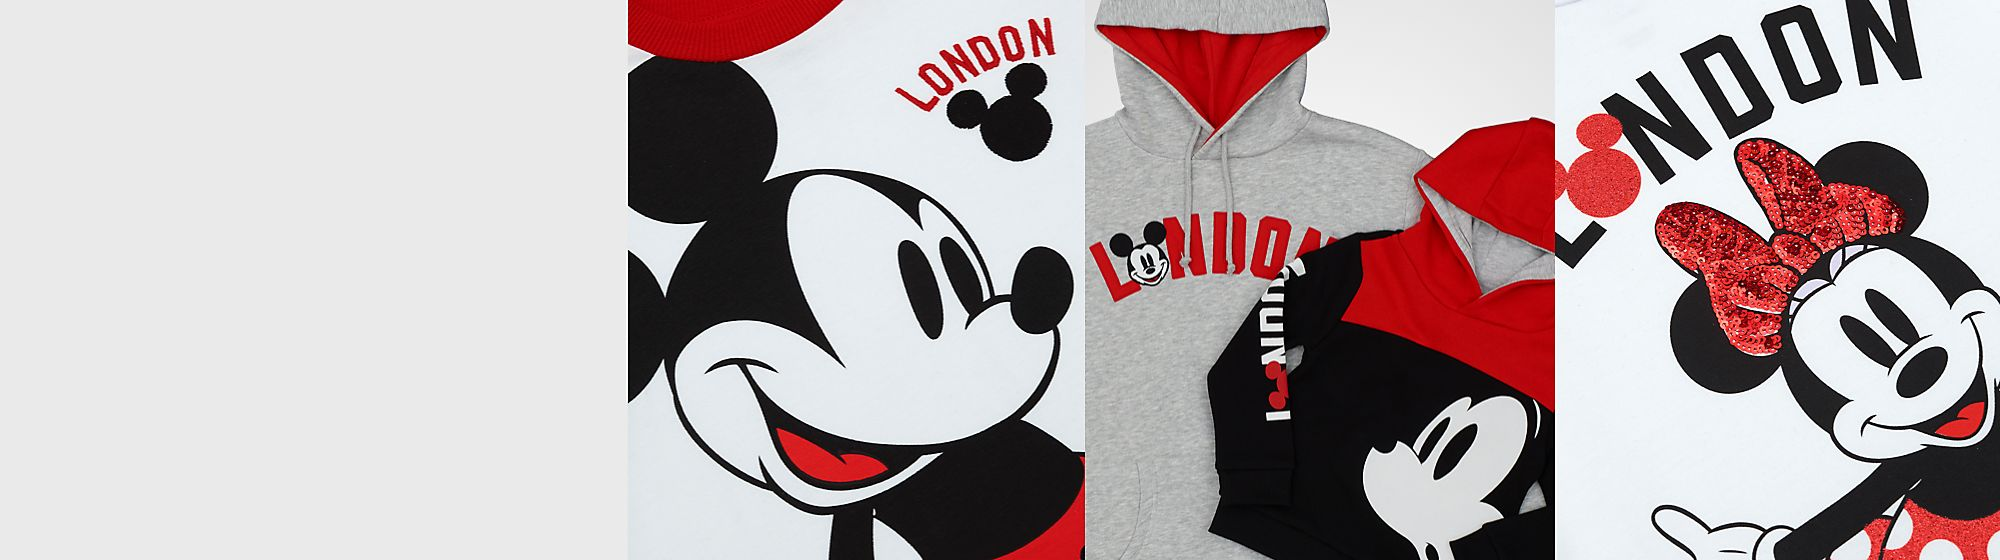 Disney Cities Range A celebration of cities for the whole family.